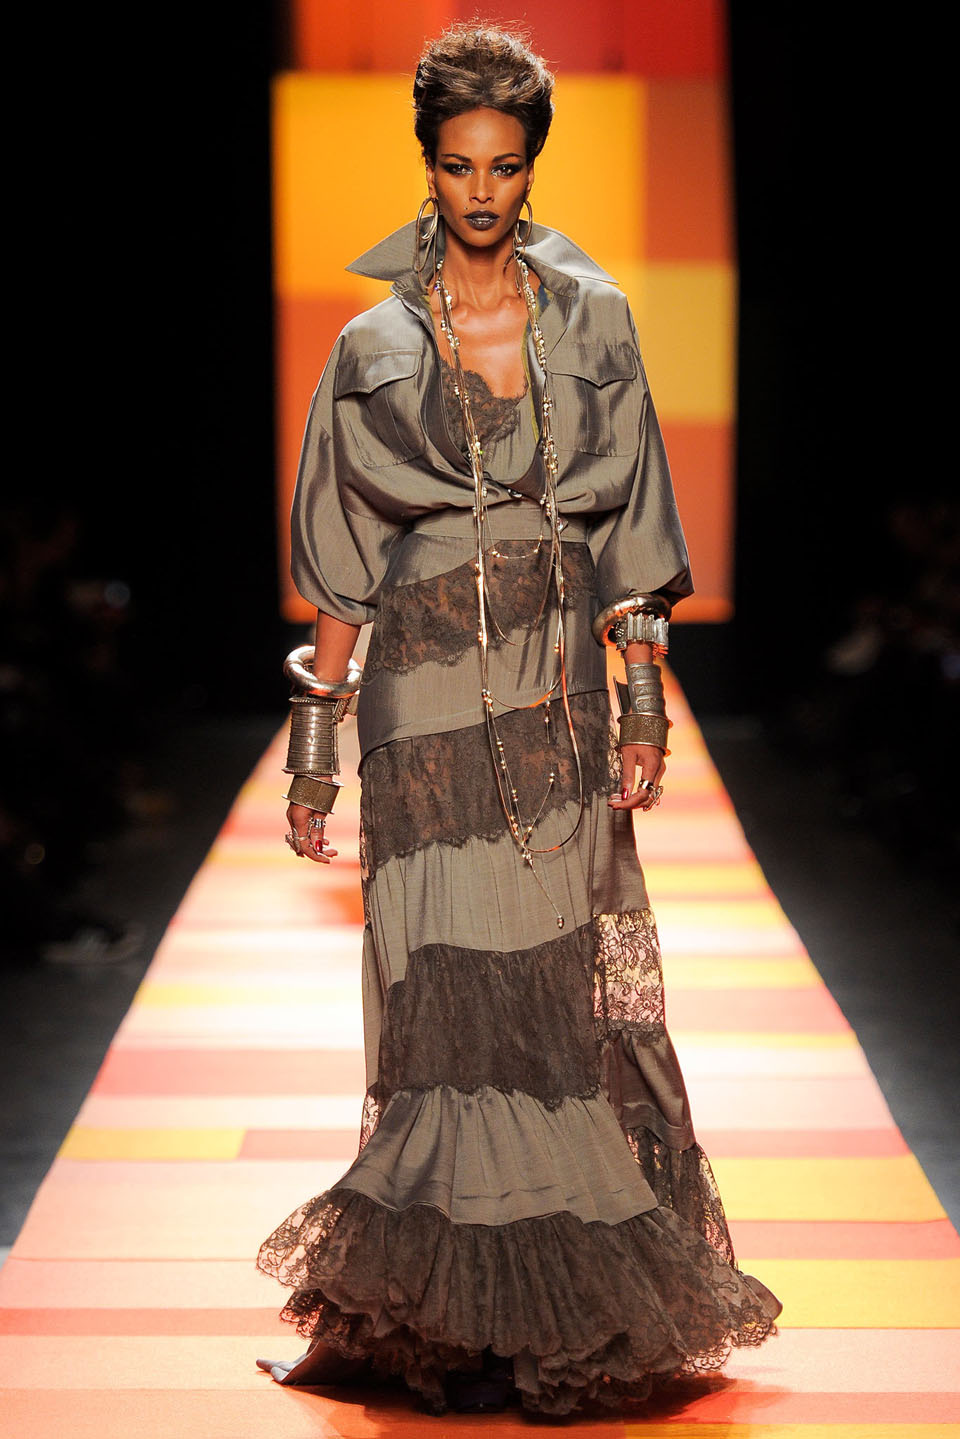 Jean Paul Gaultier Spring - Summer 2013, Haute Couture collection.9